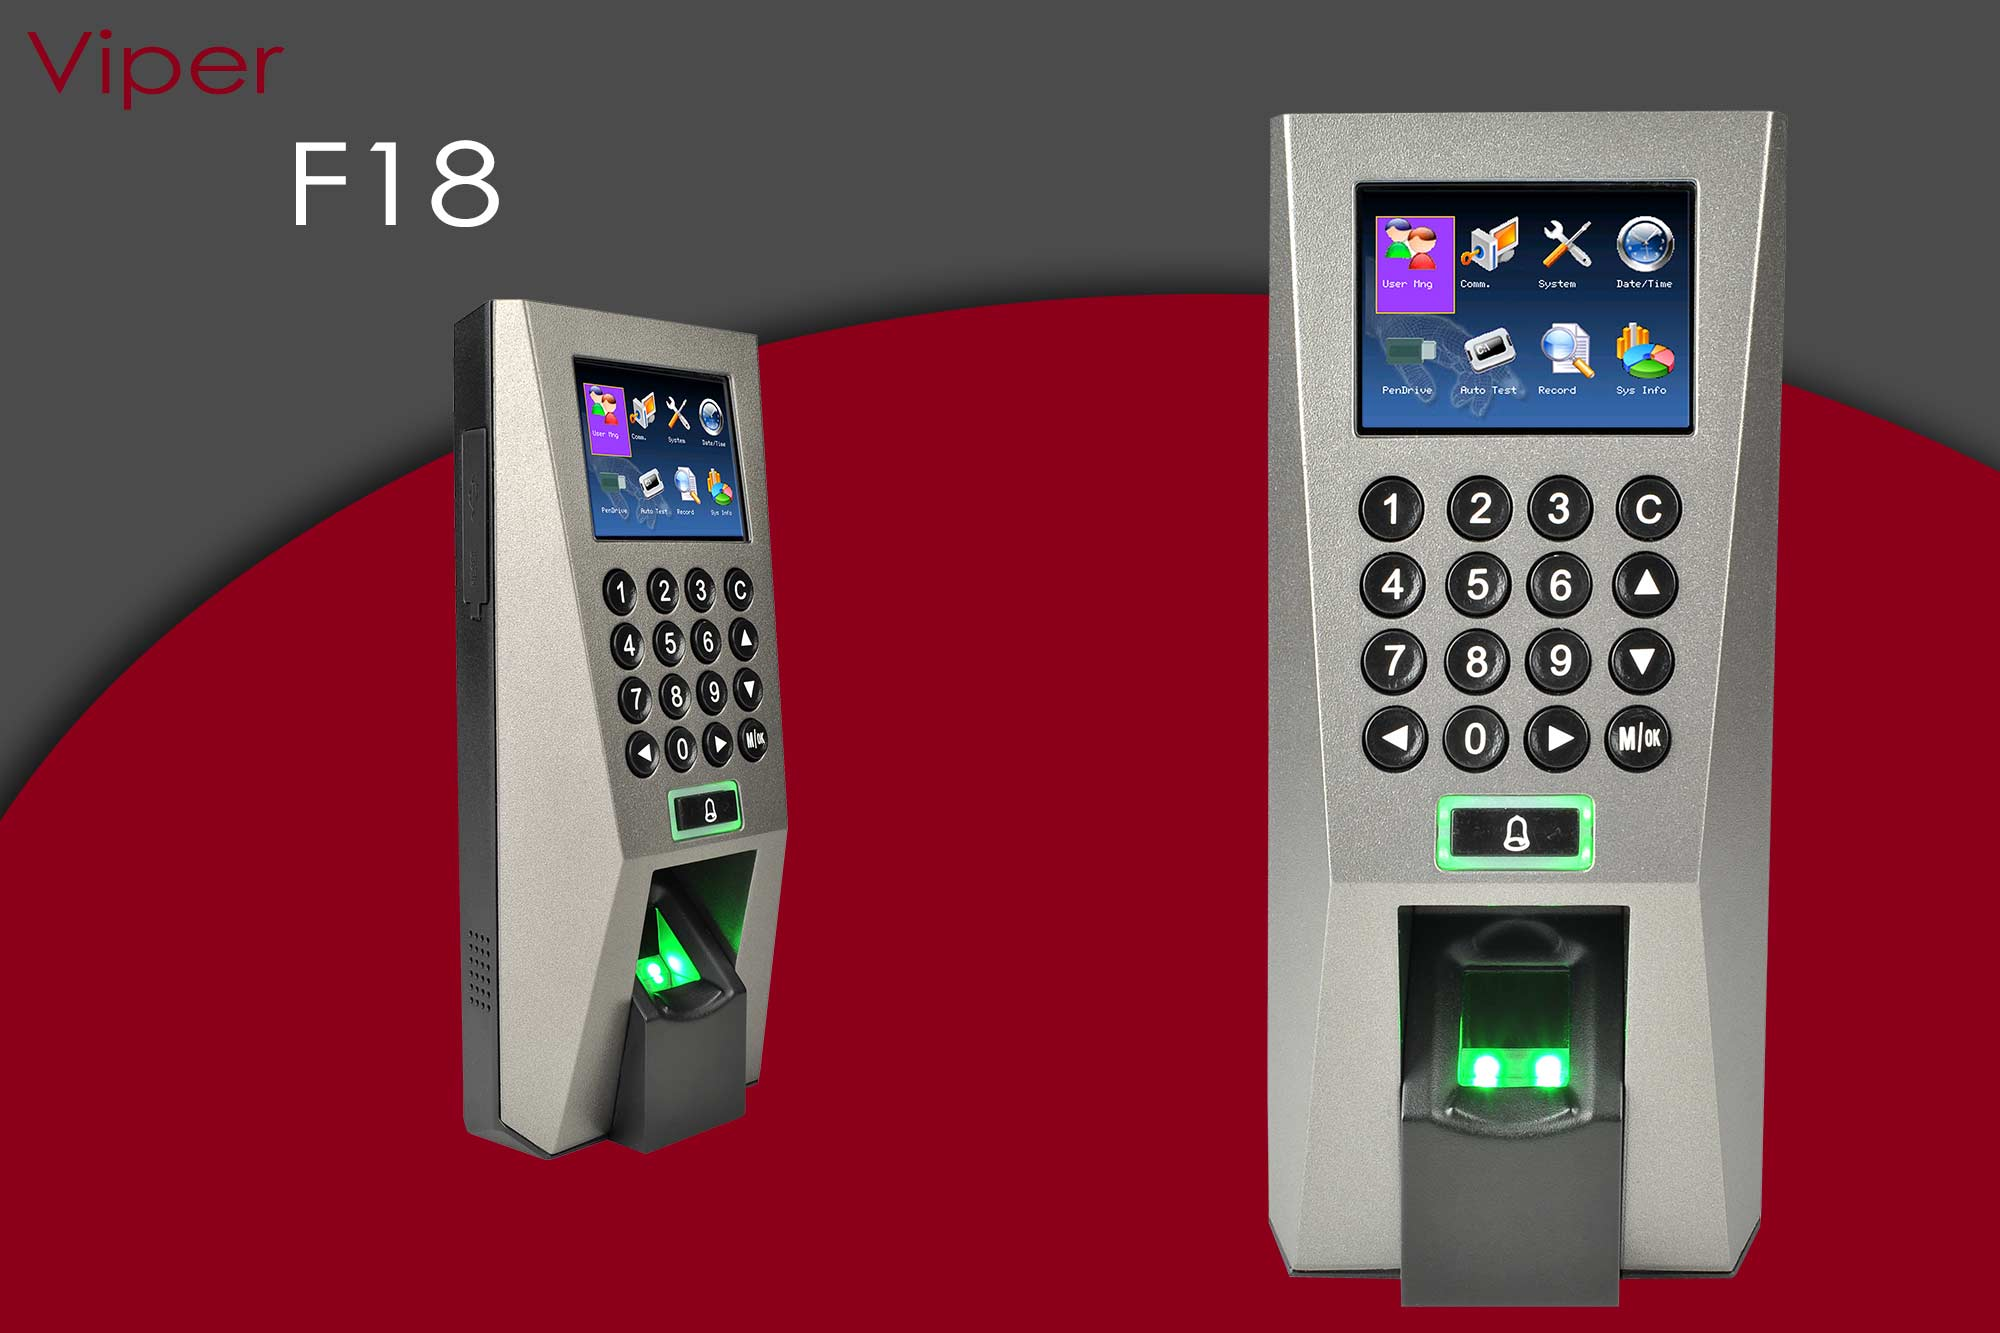 Viper F18 Time and Attendance and Access Control